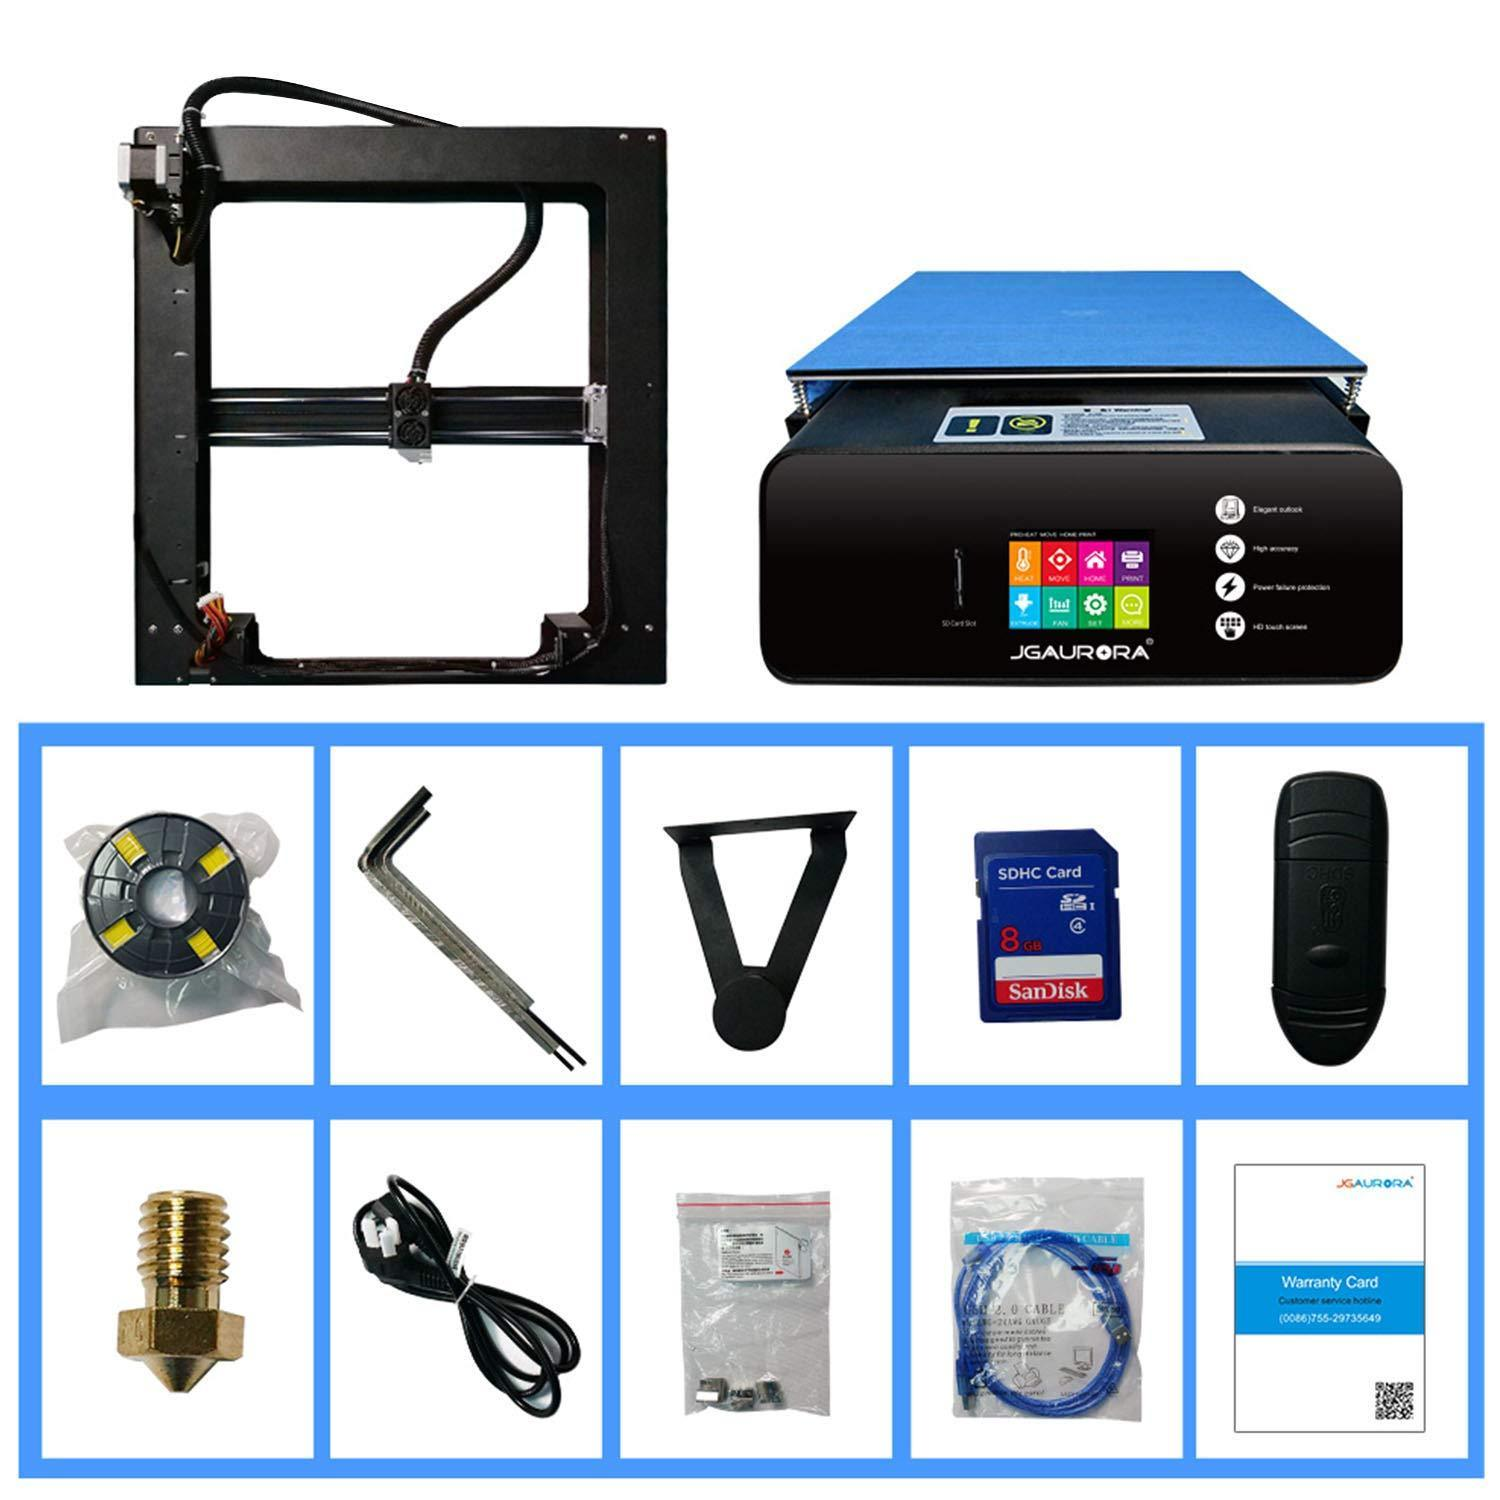 3D Printer A5S Upgraded Metal Frame Large Build Size 305x305x320mm Filament Runs Out Detection Resume Print 110V US Plug